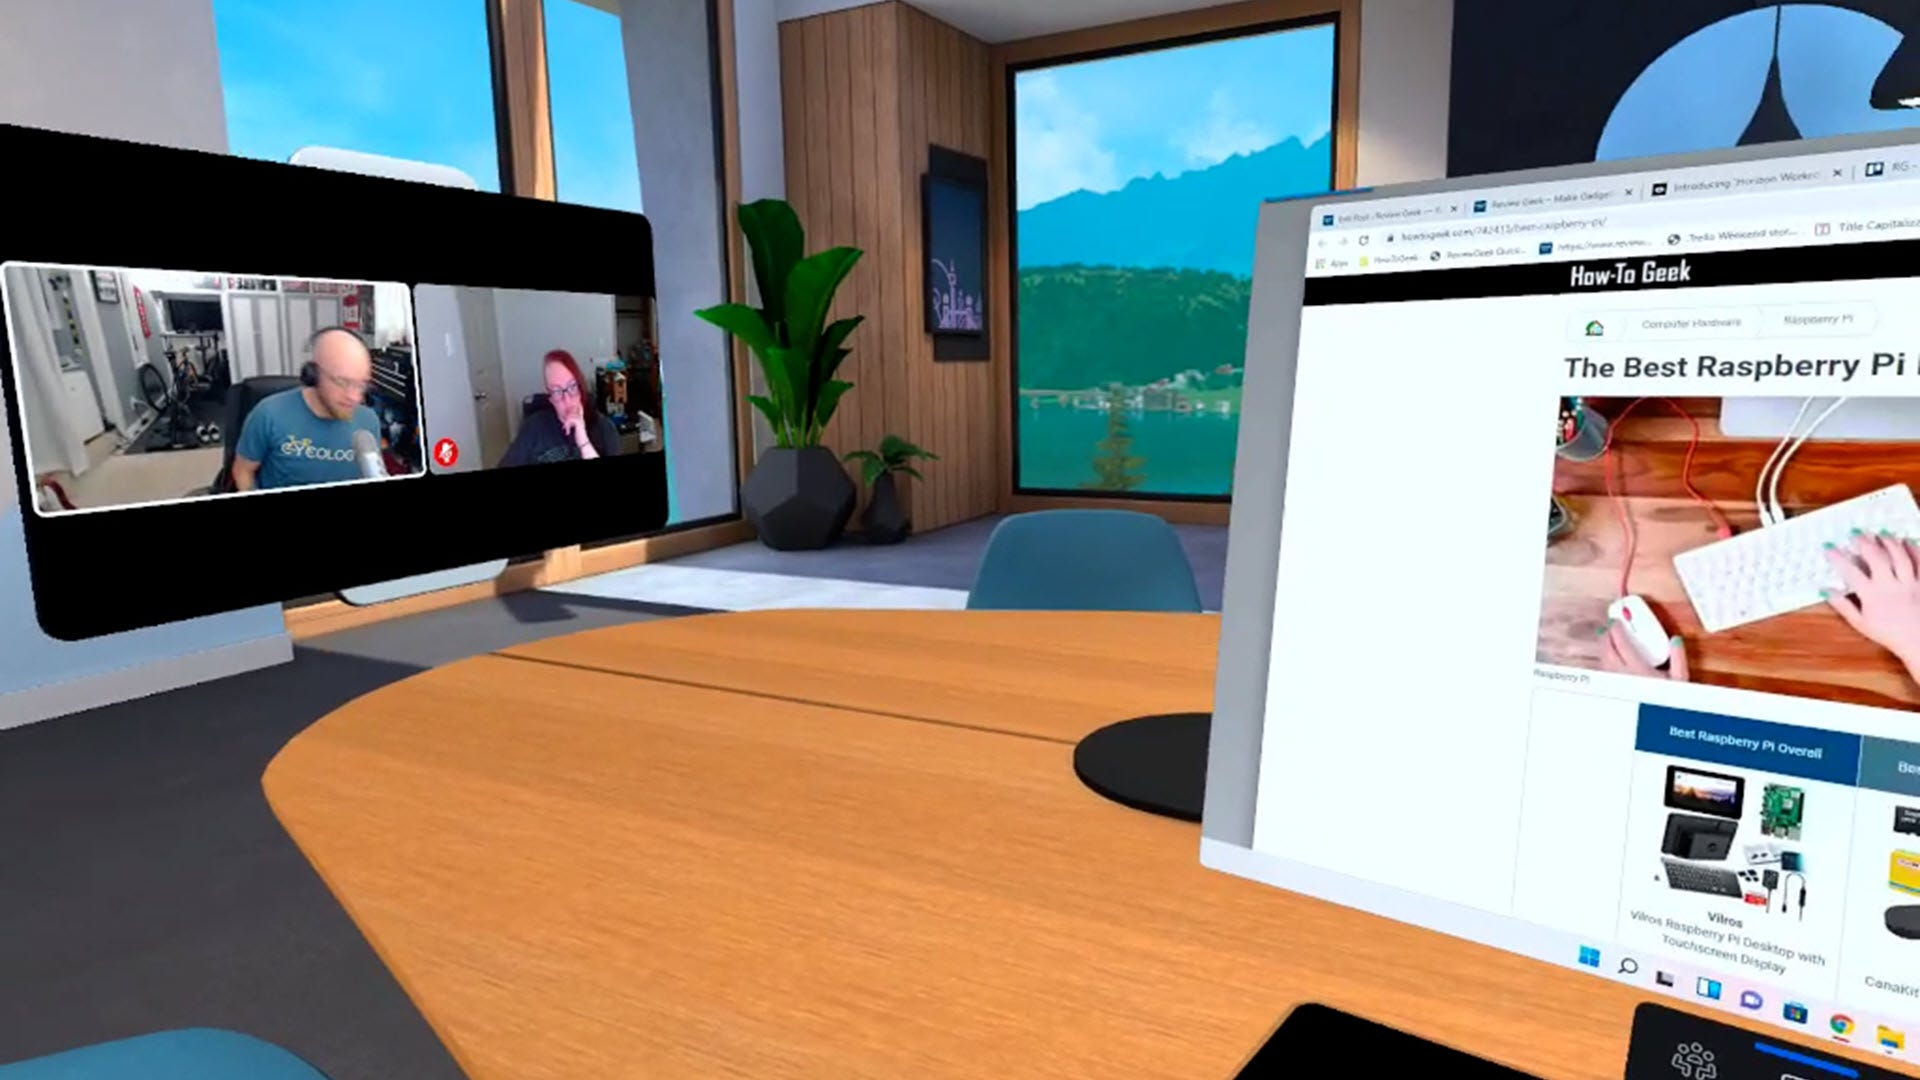 A conference room with a Zoom-like screen call in the middle.